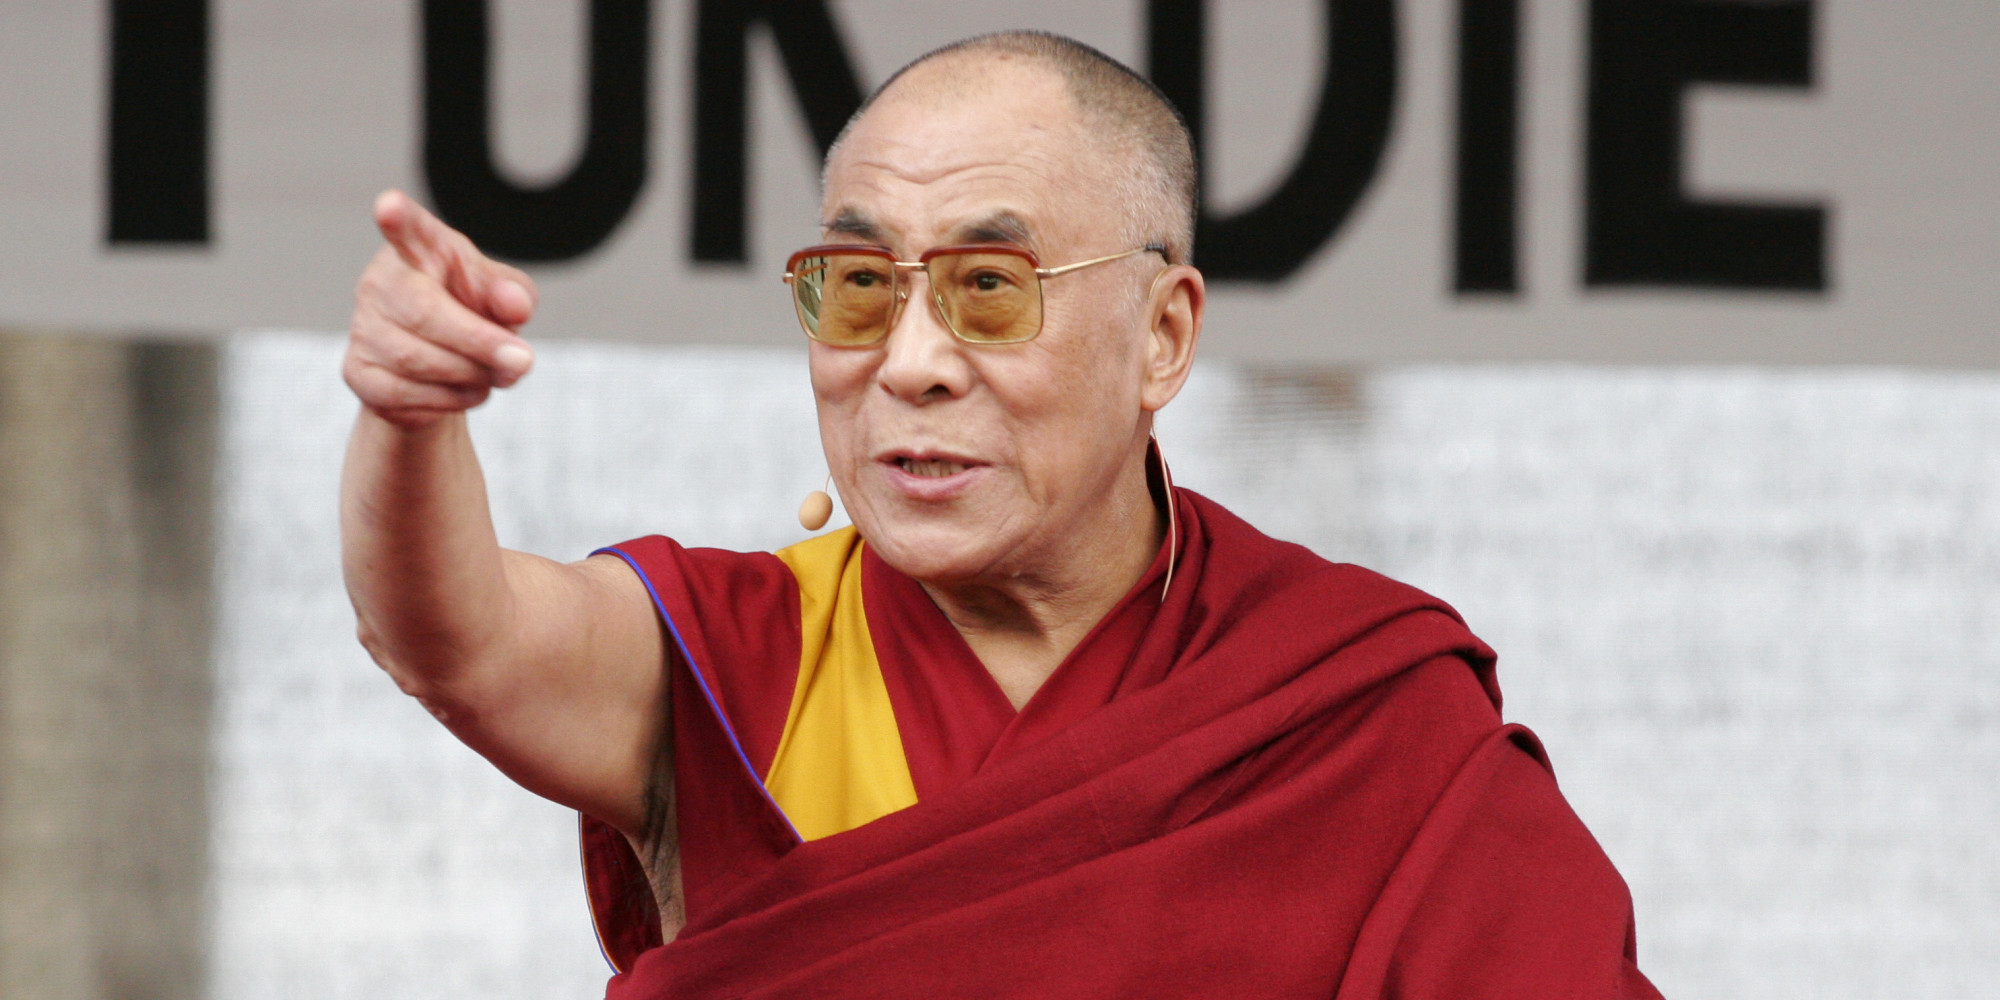 dalai lama s th birthday wish is that we all live dalai lama s 80th birthday wish is that we all live compassion the huffington post